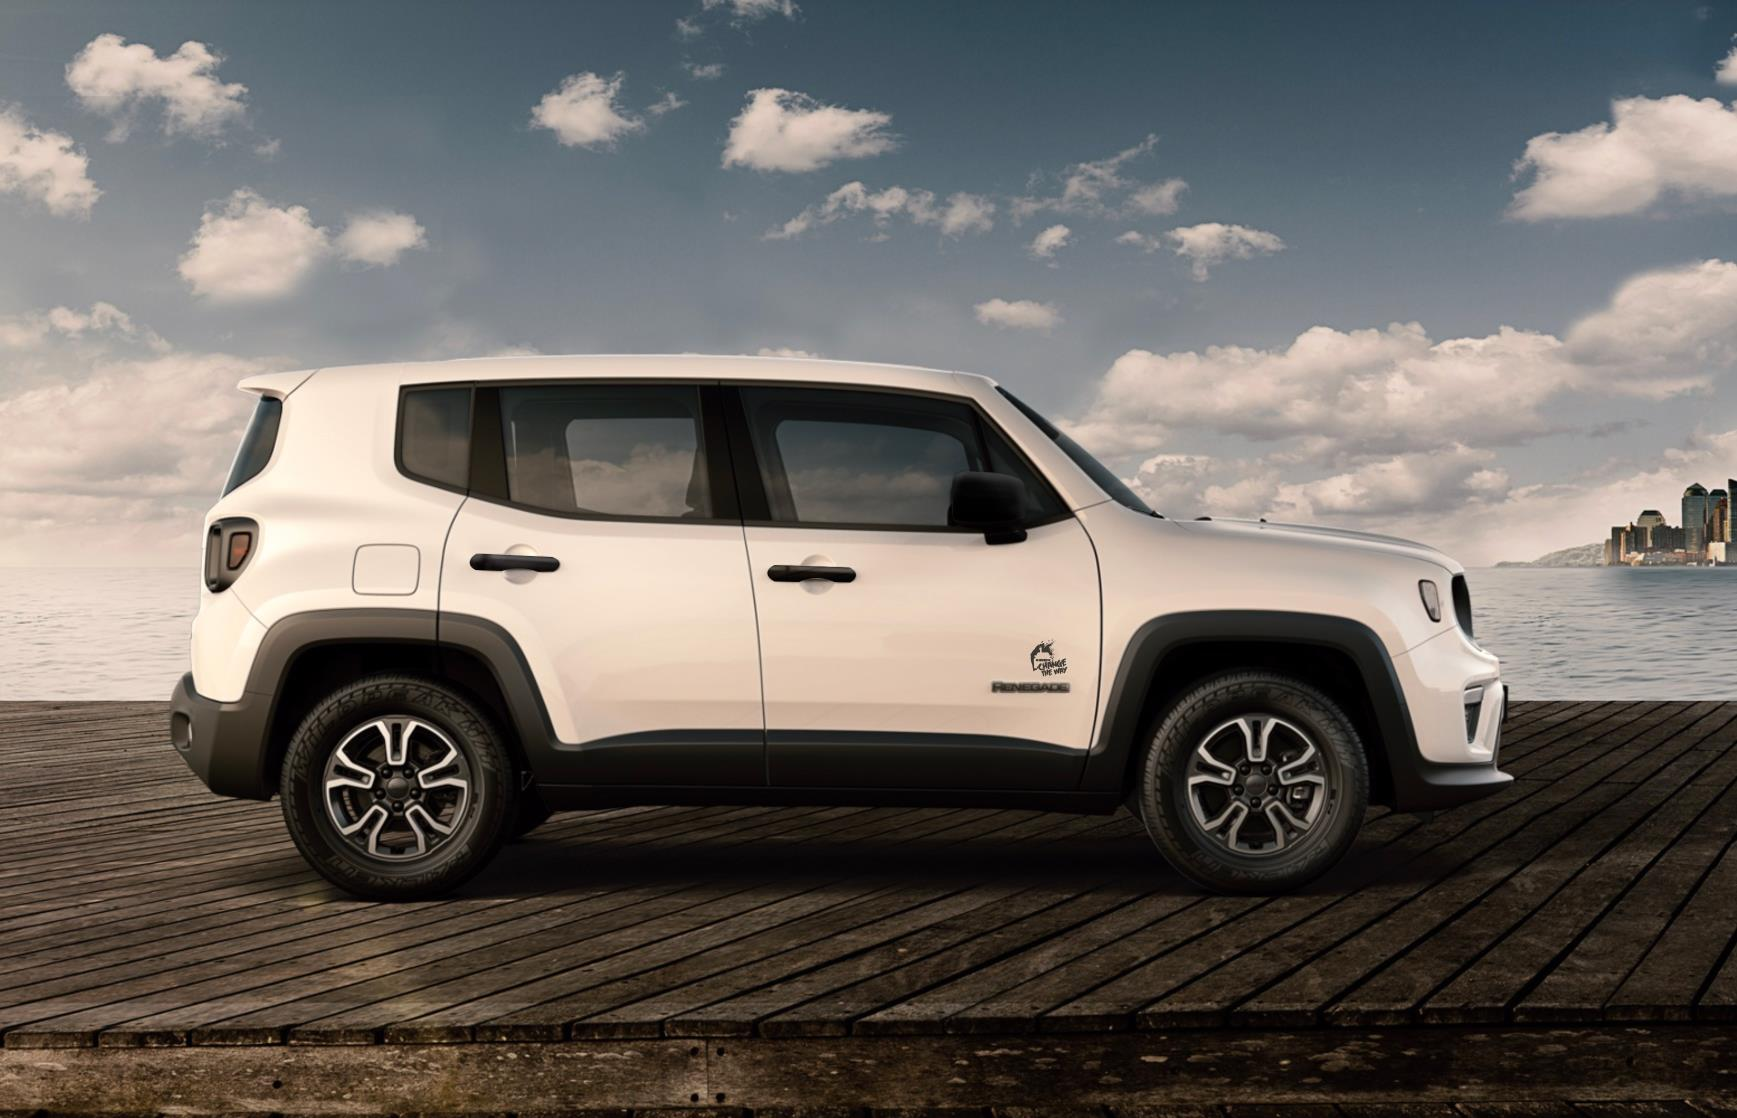 Jeep Renegade Change The Way: lateral